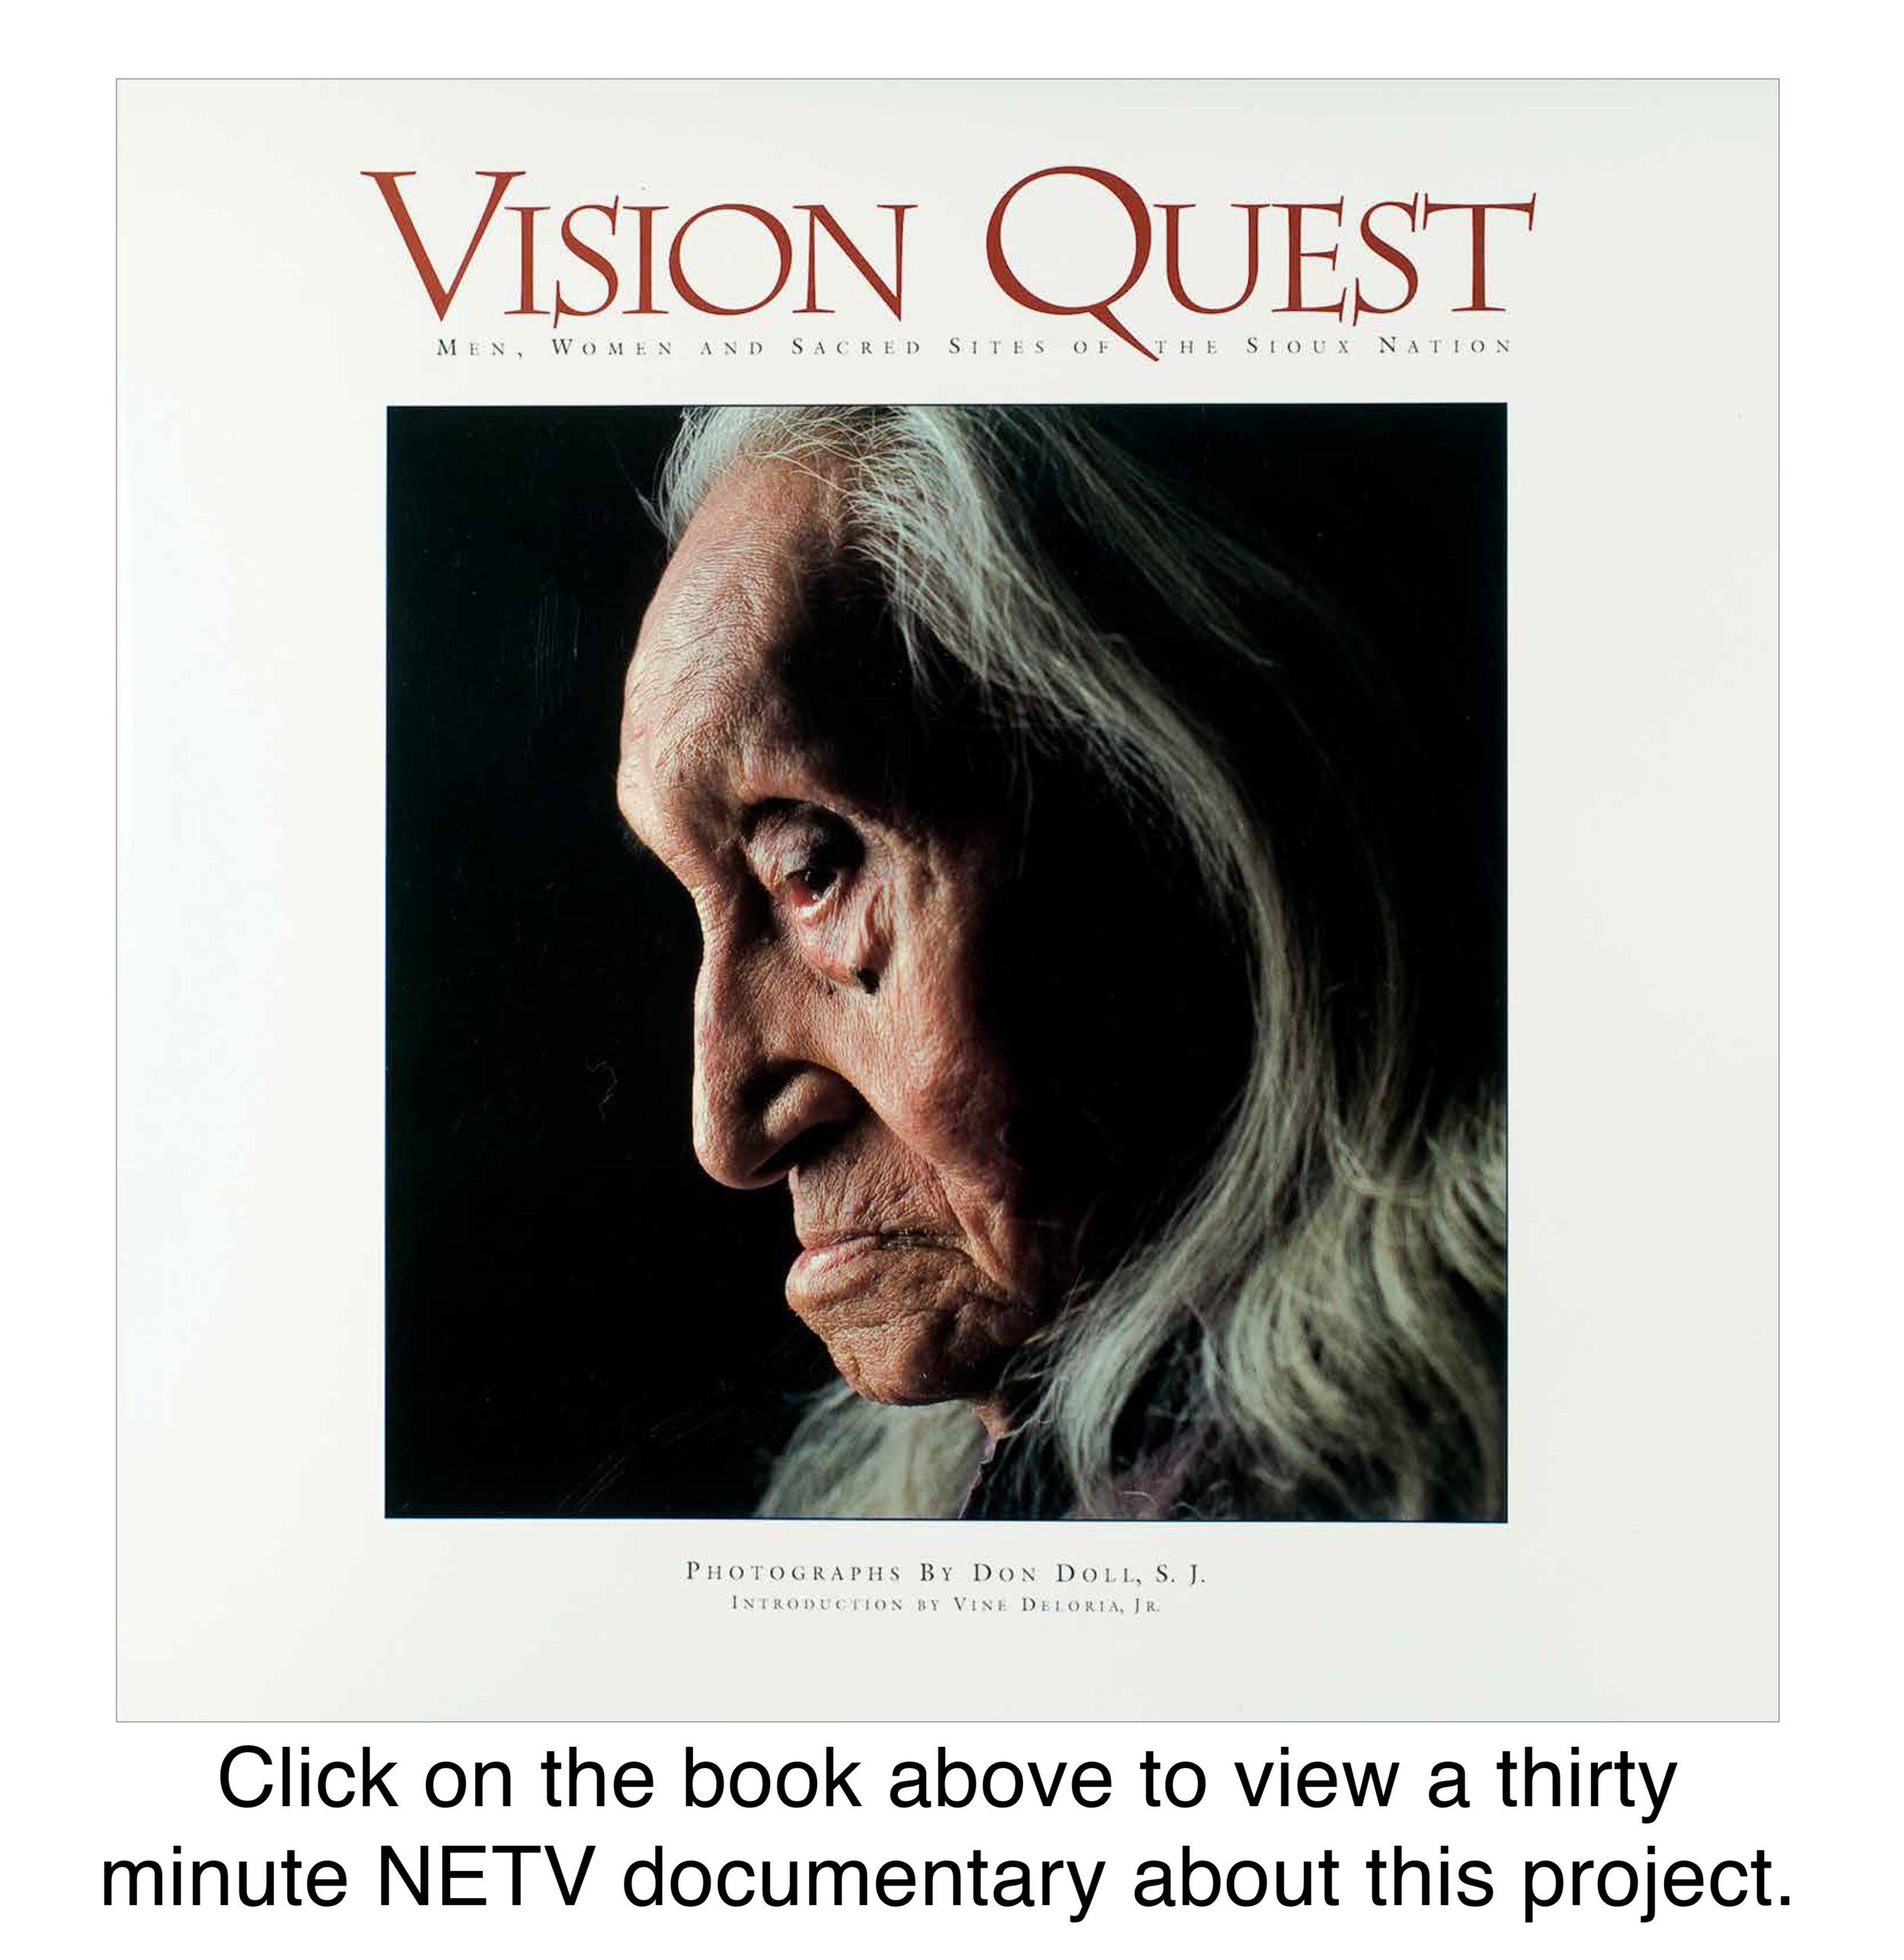 Vision_Quest_Book_Cover_w_text.png